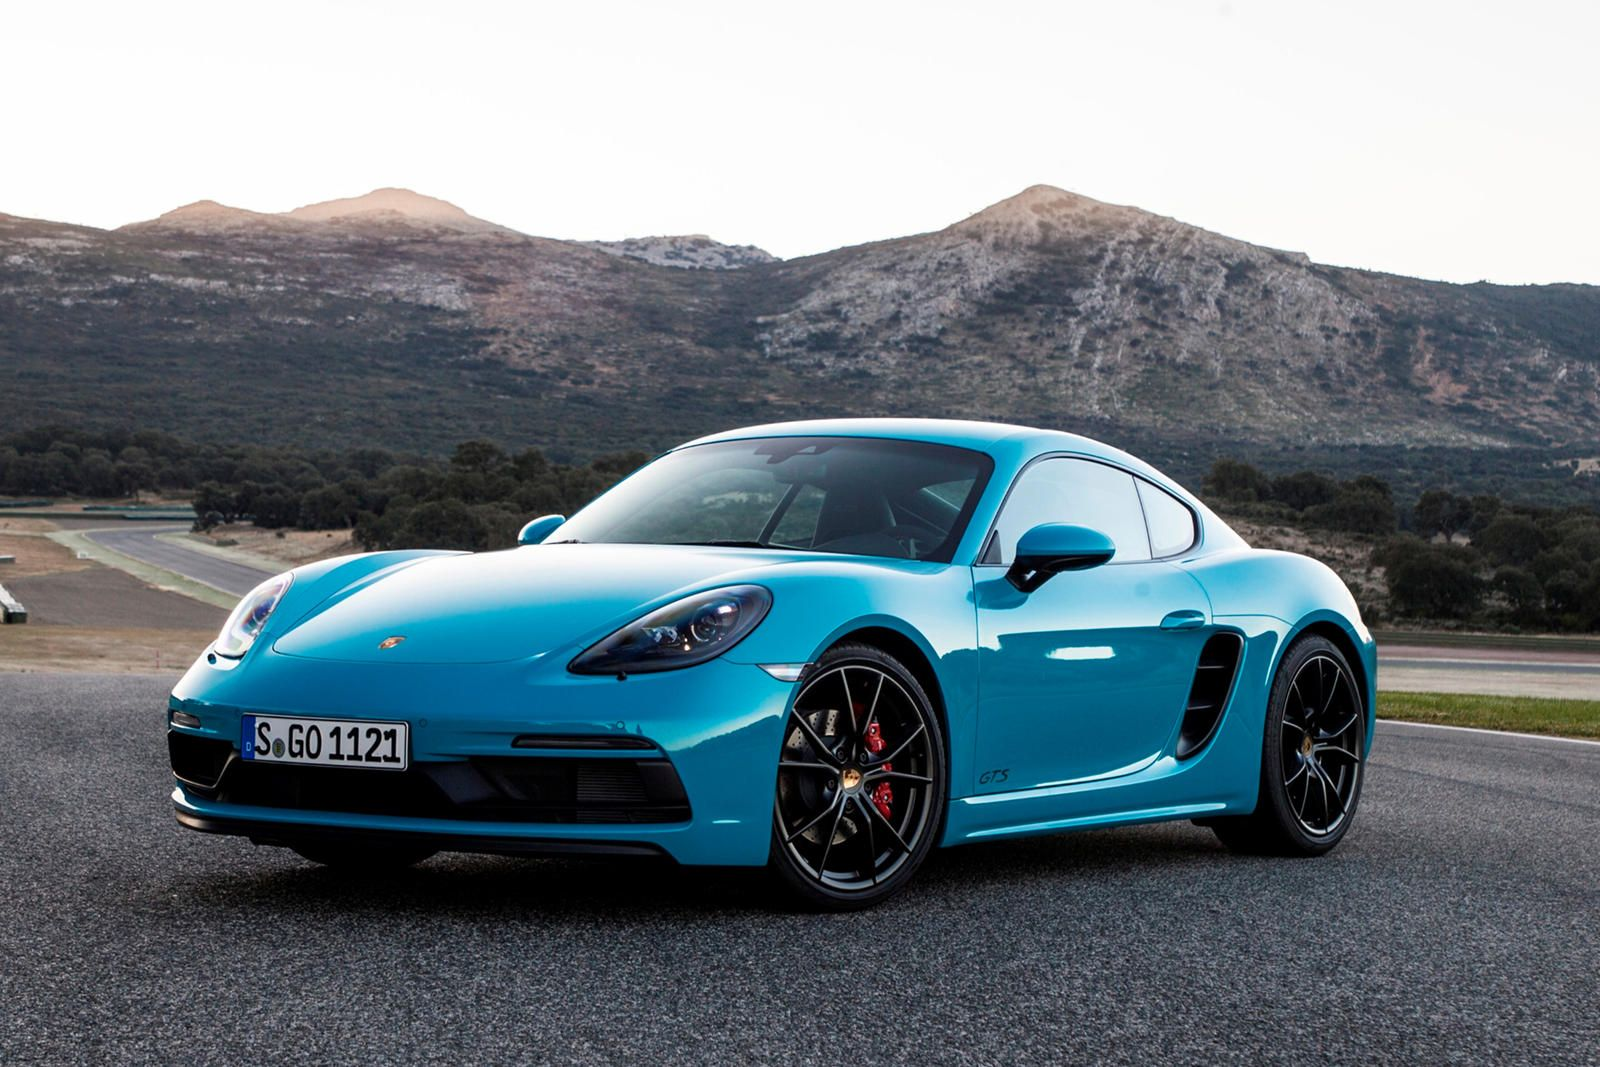 20192020 Porsche 718 Cayman Front Angle View in 2020